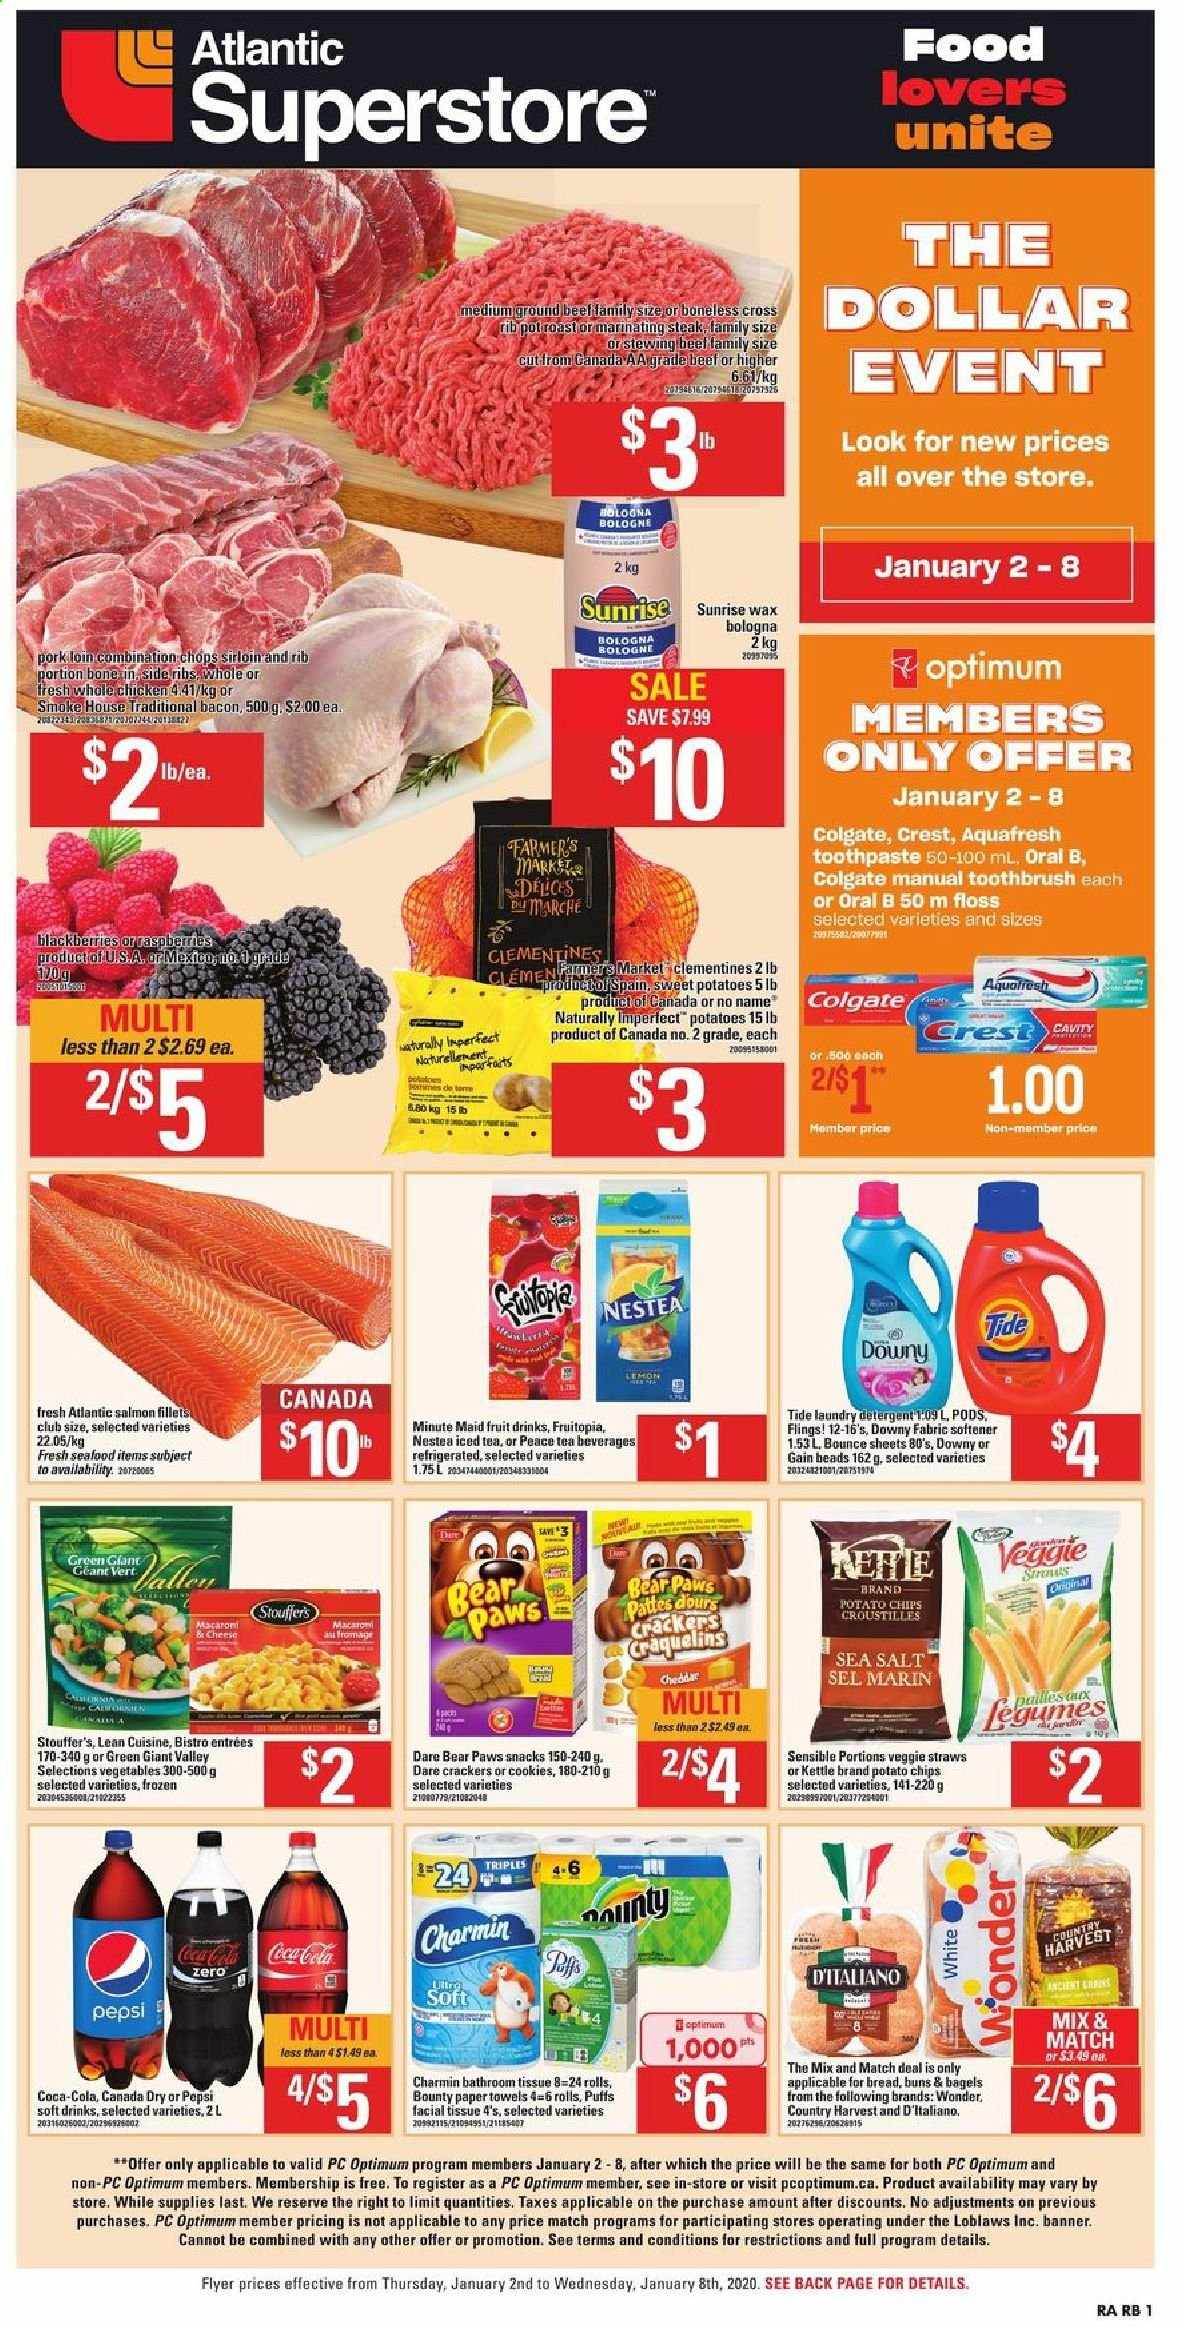 Atlantic Superstore Flyer  - January 02, 2020 - January 08, 2020. Page 1.